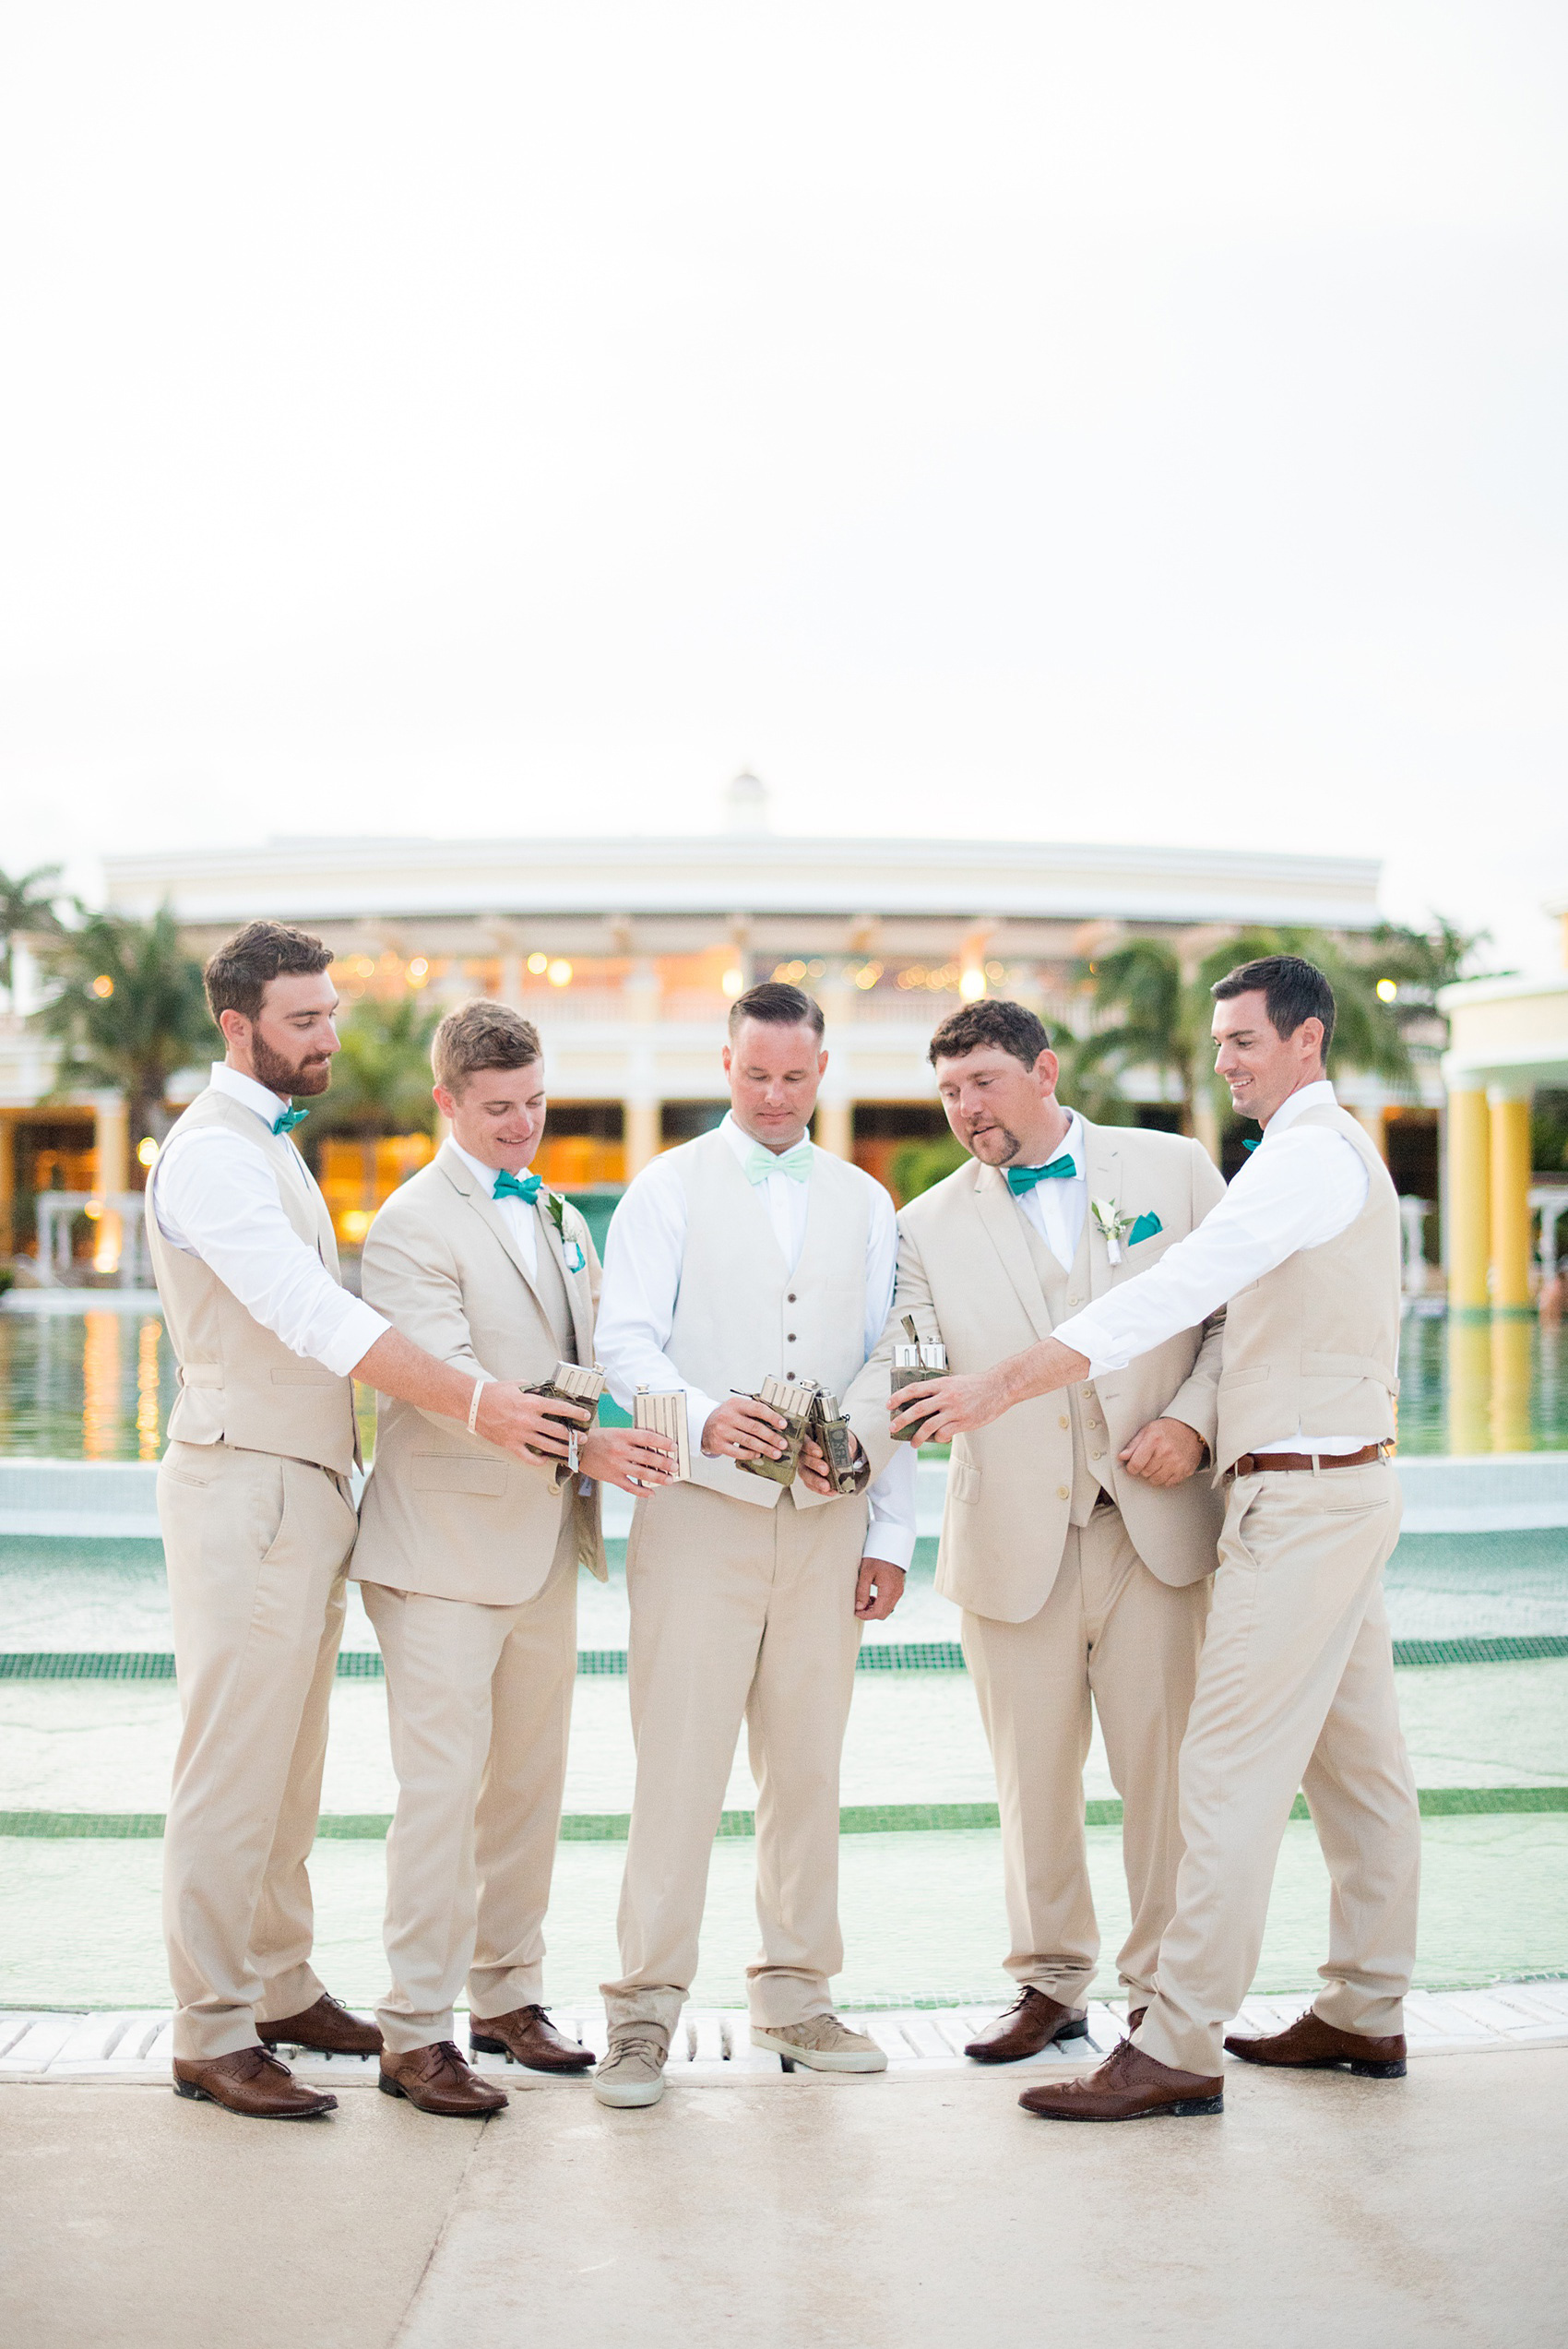 Mikkel Paige Photography photos from a wedding at Grand Paraiso, Mexico, Playa del Carmen Iberostar resort. Picture of the groomsmen with their army, military flasks from the groom.